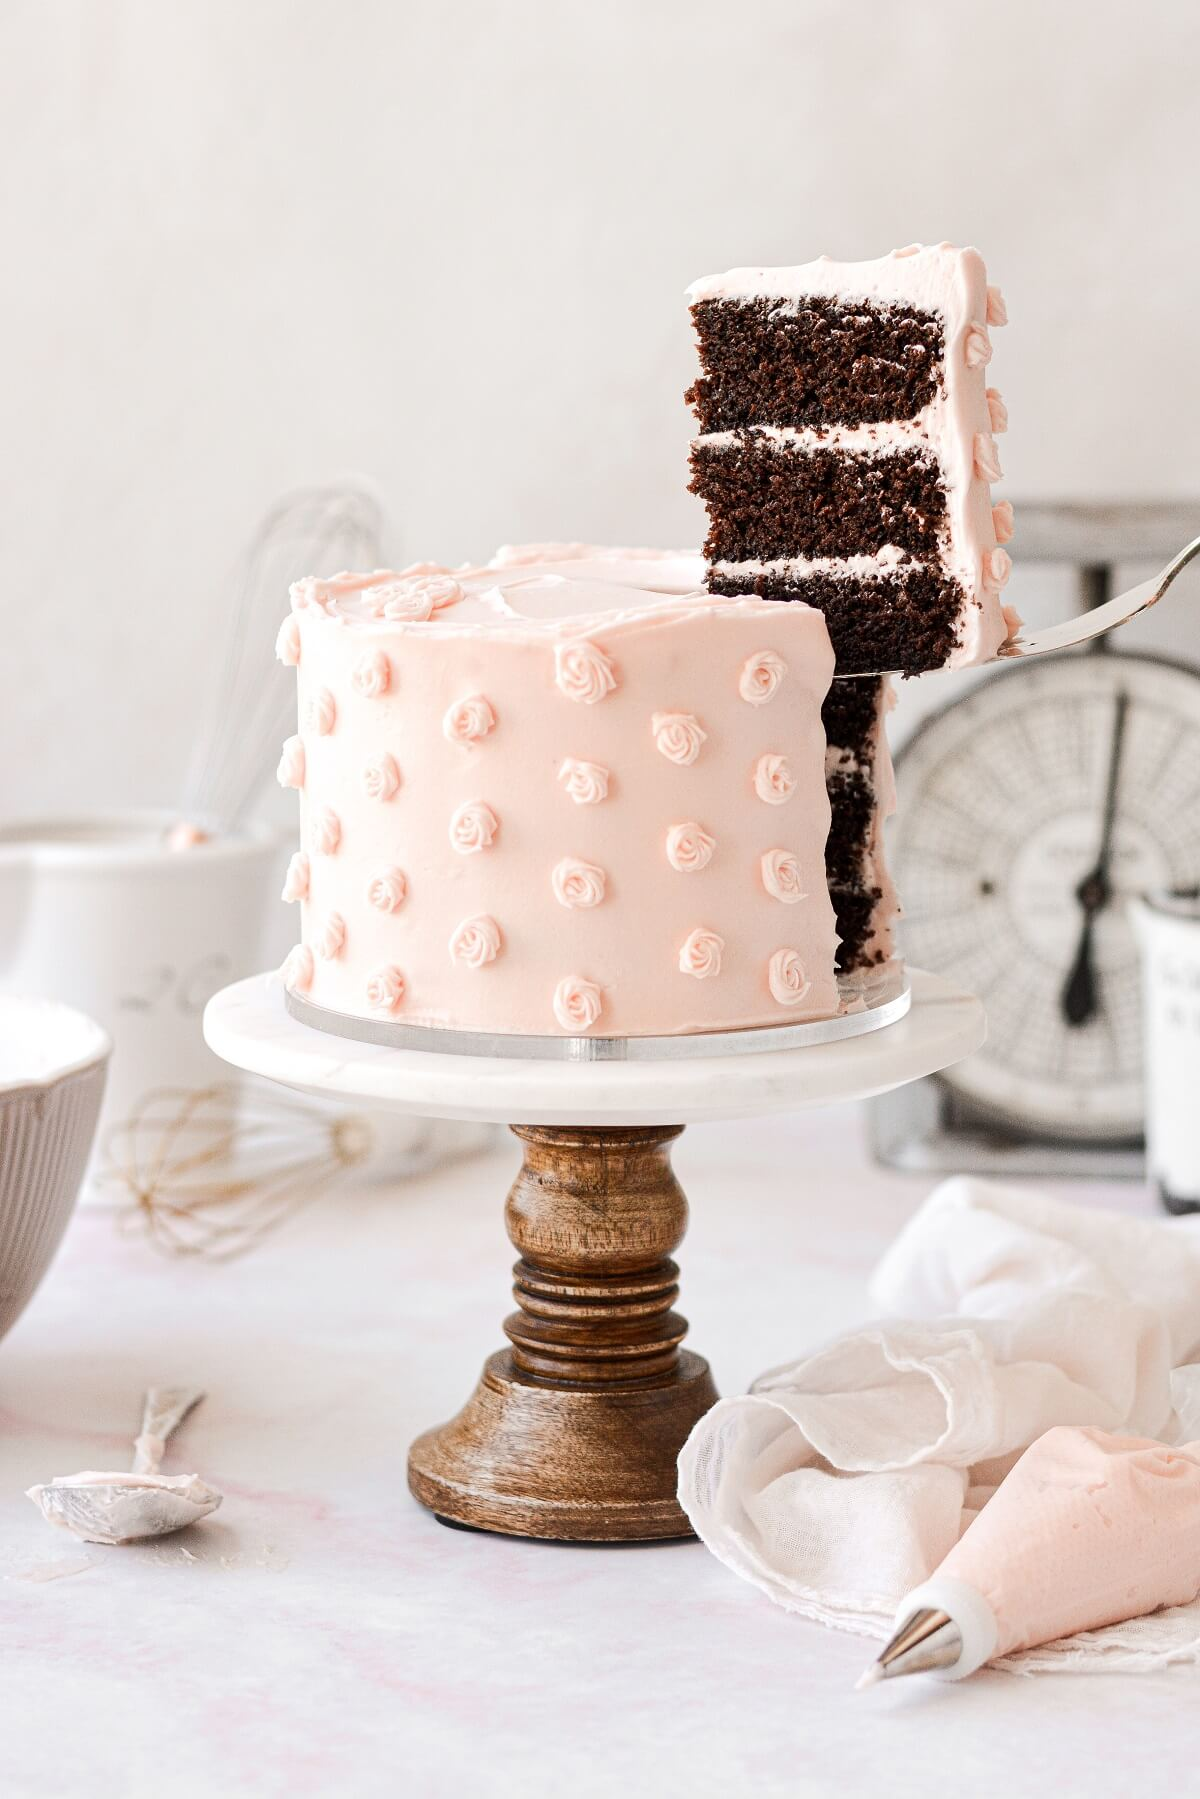 A slice of chocolate cake being lifted out of a layer cake.